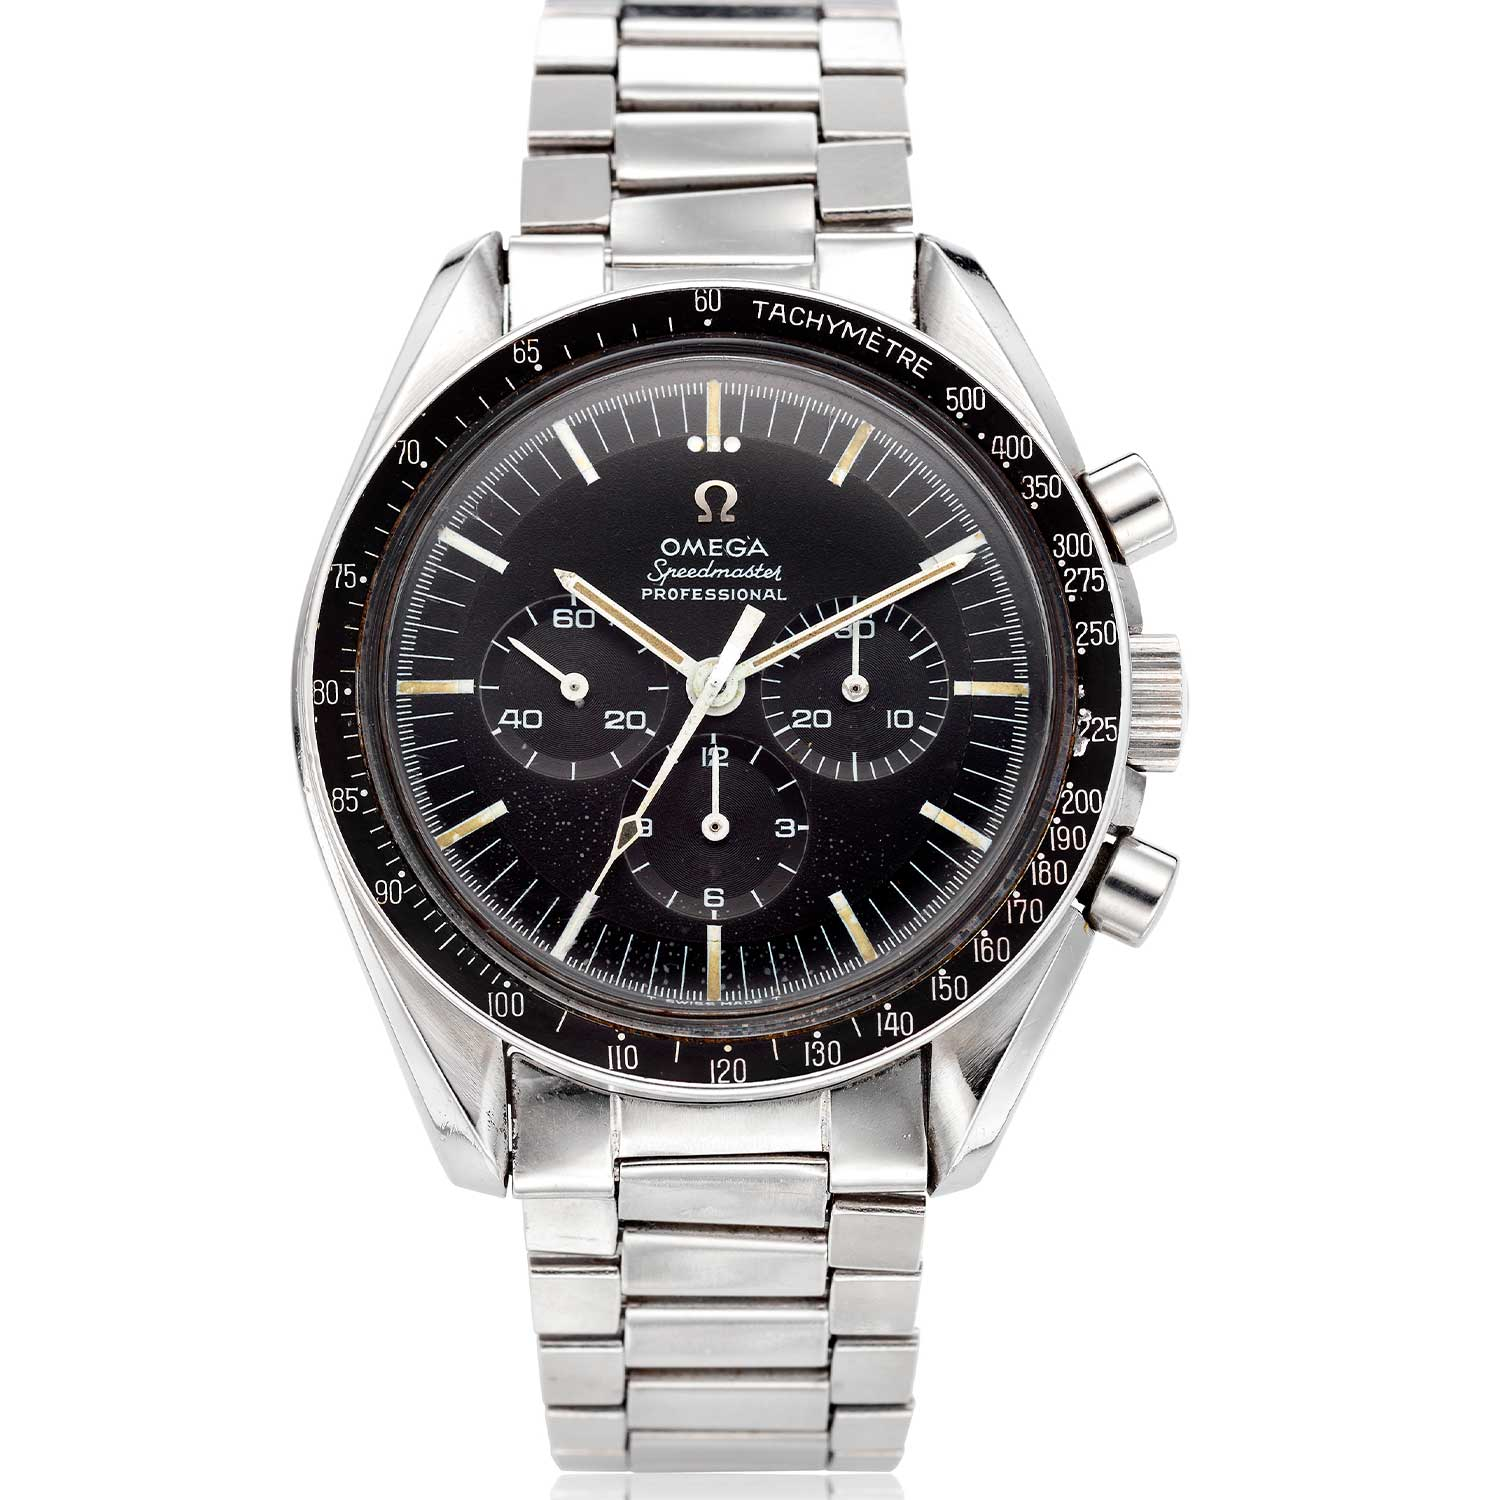 The Speedmaster ref. ST 145.012 with a DON bezel (Image: Christies.com)